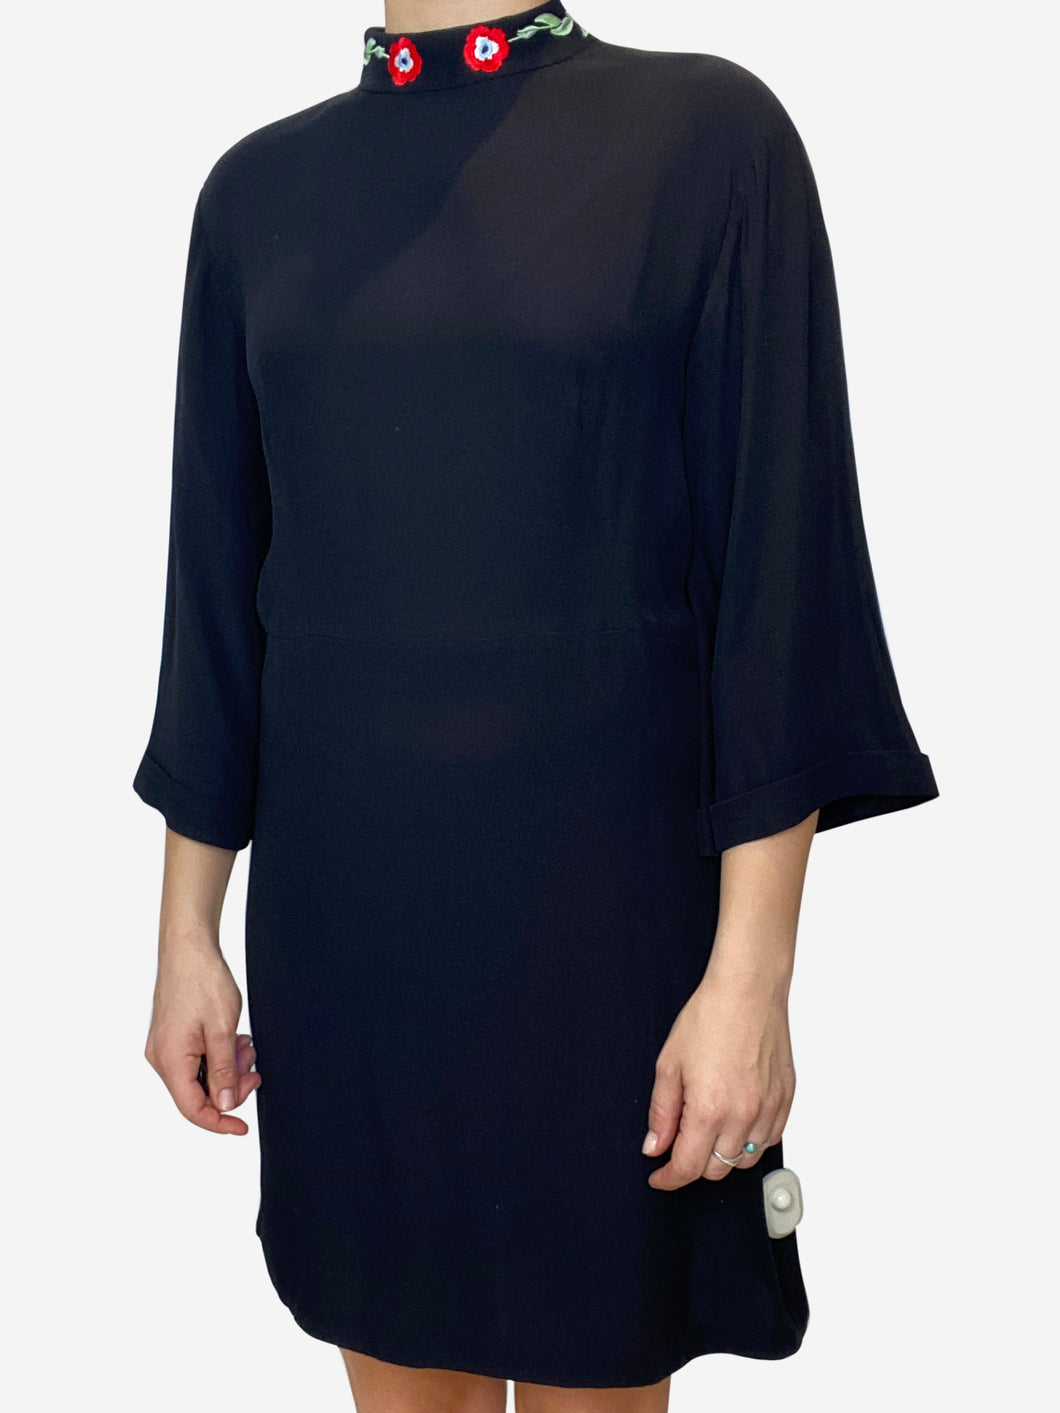 Black mini dress with embroidered collar - size M